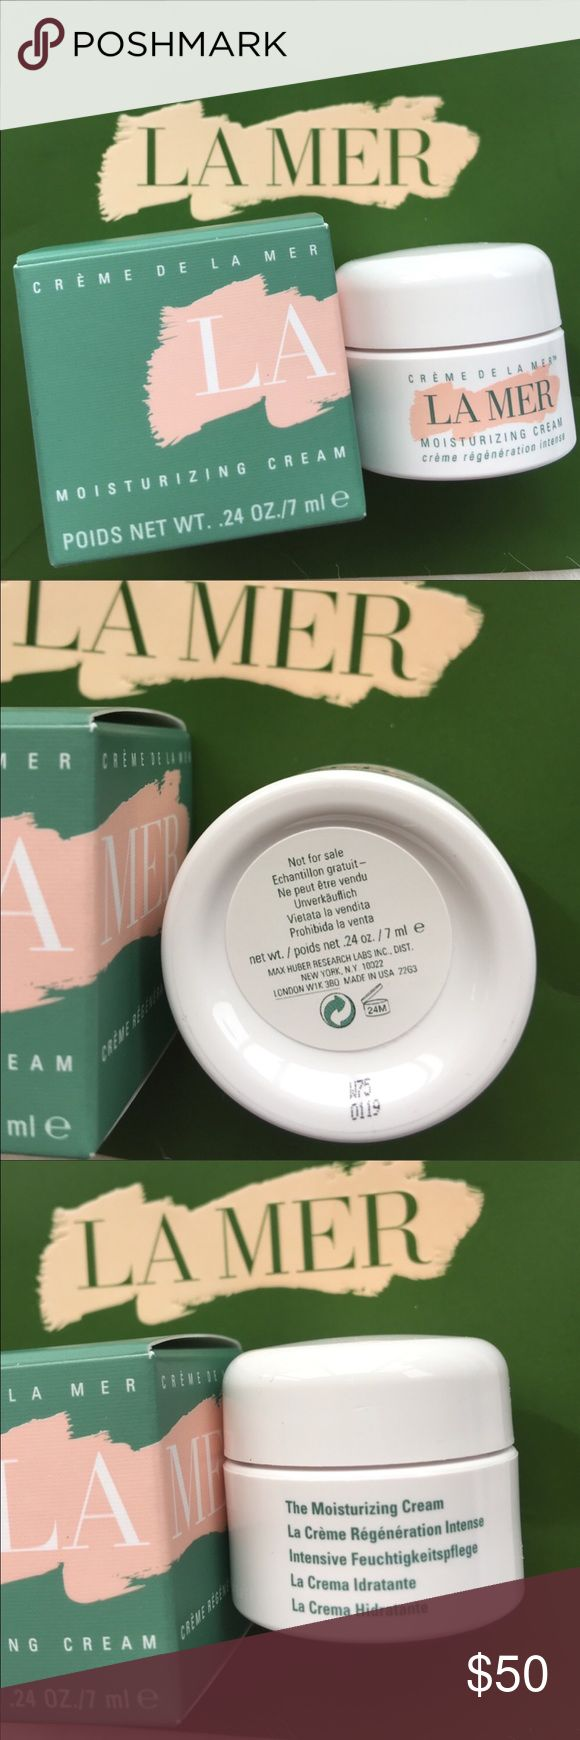 La Mer classic moisturizer cream Price firm❣️Brand new. Never used. 7ml deluxe travel size. 🚫no trades. I have 3 of them. La Mer is the BEST skincare you can find so far in stores. I've been using them for five years and kinda an expert. Explore my closet for more la Mer travel sizes item to try out prior to purchasing the full size in stores. Let me know if you have any questions :-) La Mer Makeup